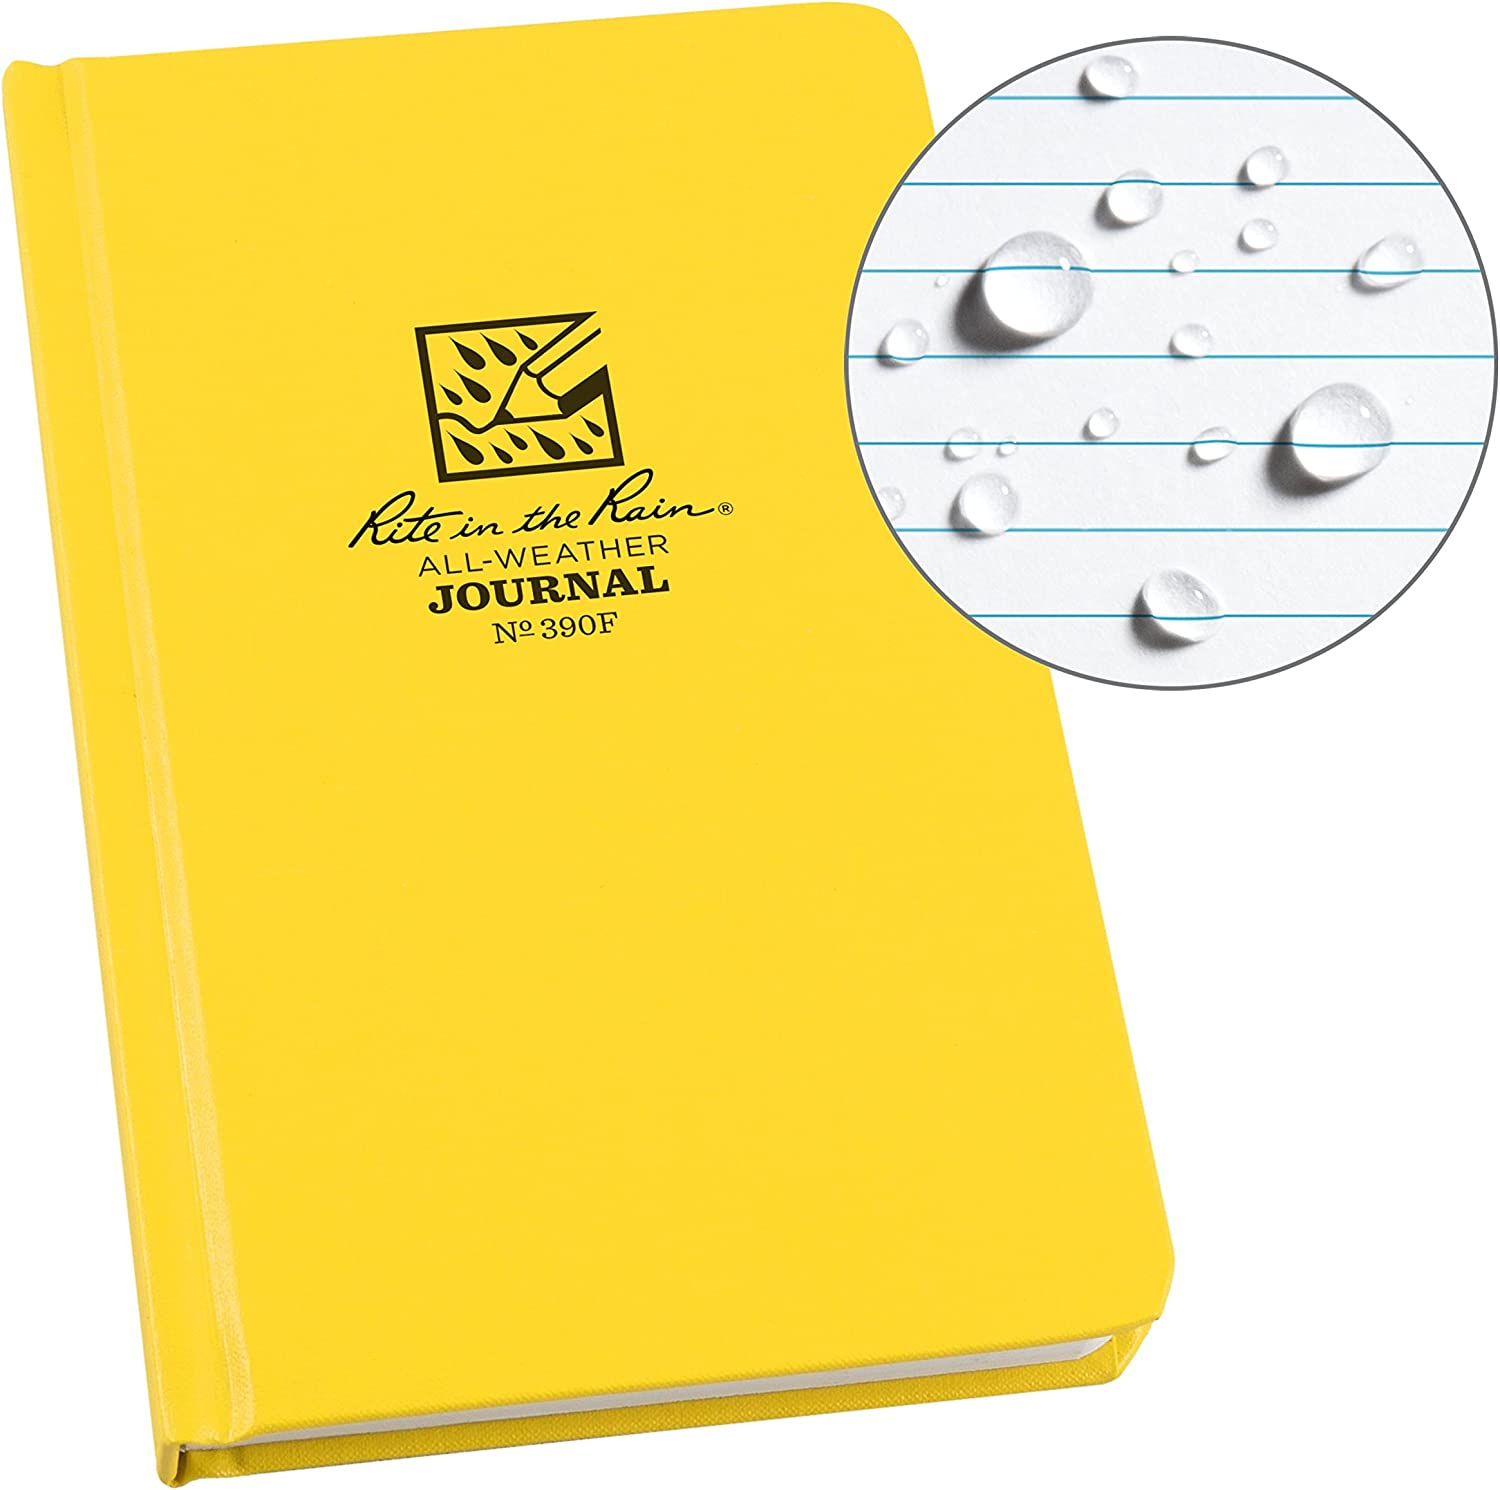 """Rite In The Rain Weatherproof Hard Cover Notebook, 4.75"""" x 7.5""""x 0.625, Yellow Cover, Journal Pattern (No. 390F)"""